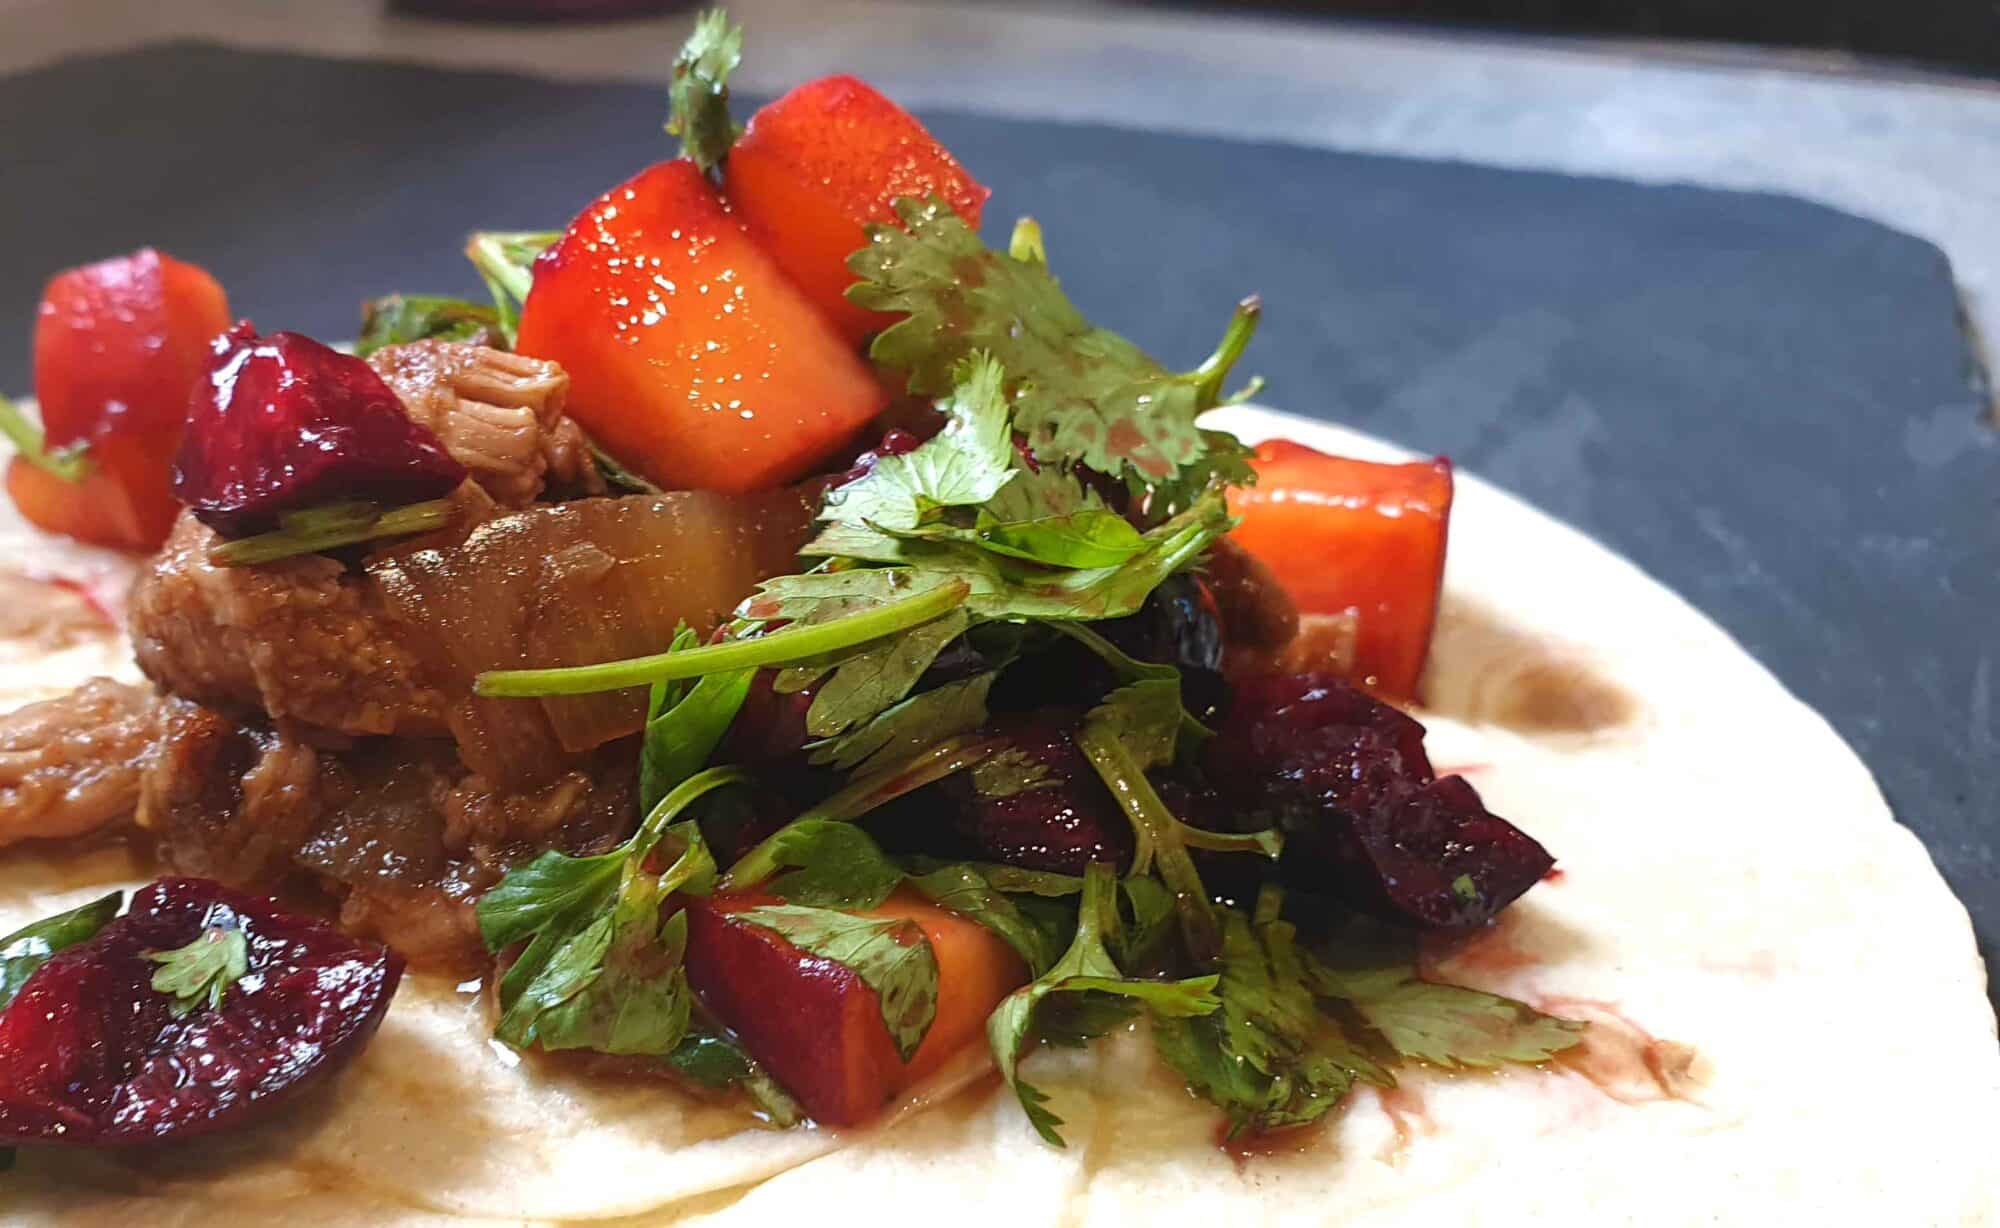 Spicy Pulled Pork Tacos With Sweet Salsa